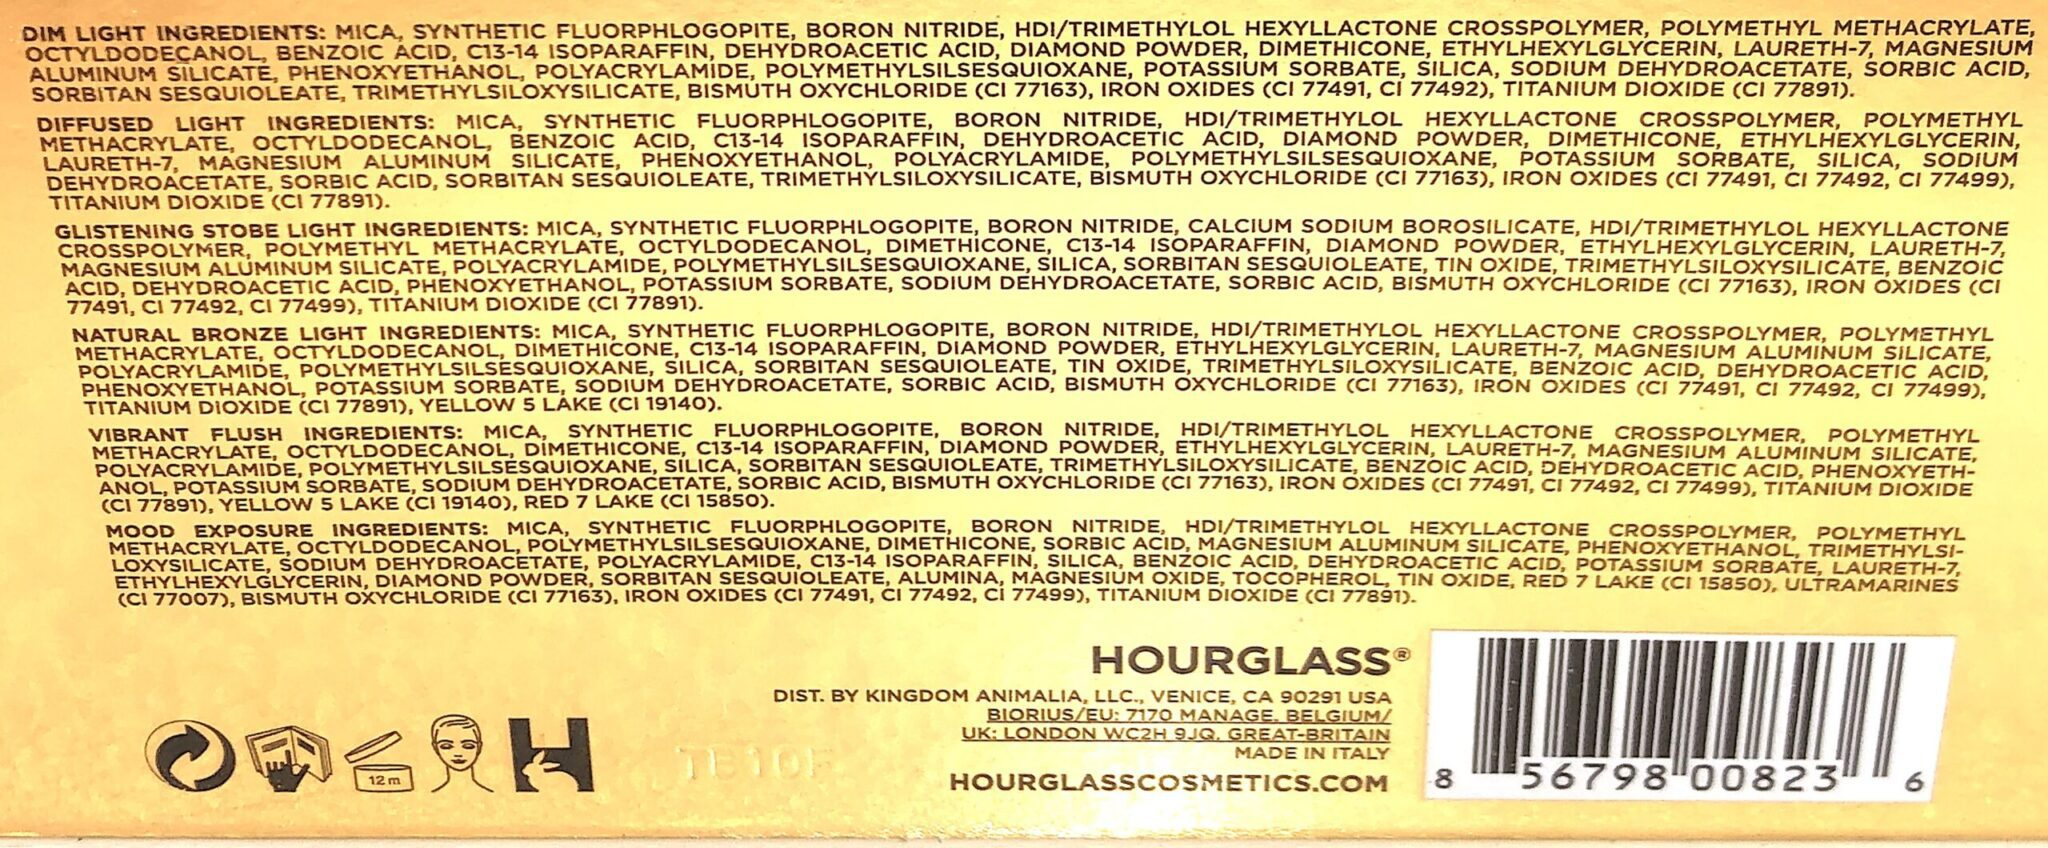 INGREDIENTS FOR THE HOURGLASS AMBIENT LIGHTING EDIT SCULPTURE